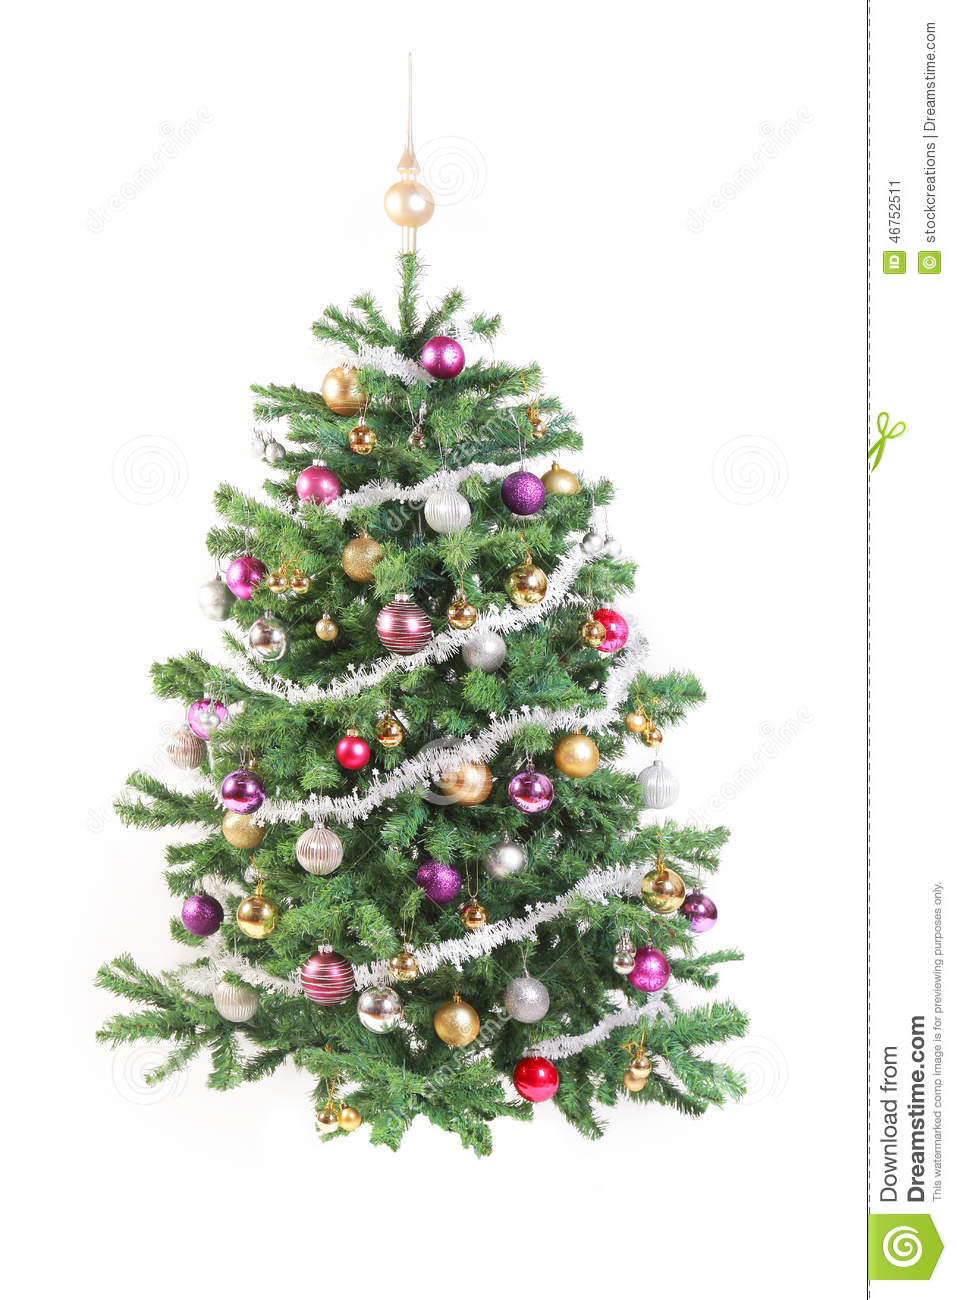 Decorate Christmas Tree Garland : Decorated christmas tree with garland stock photo image